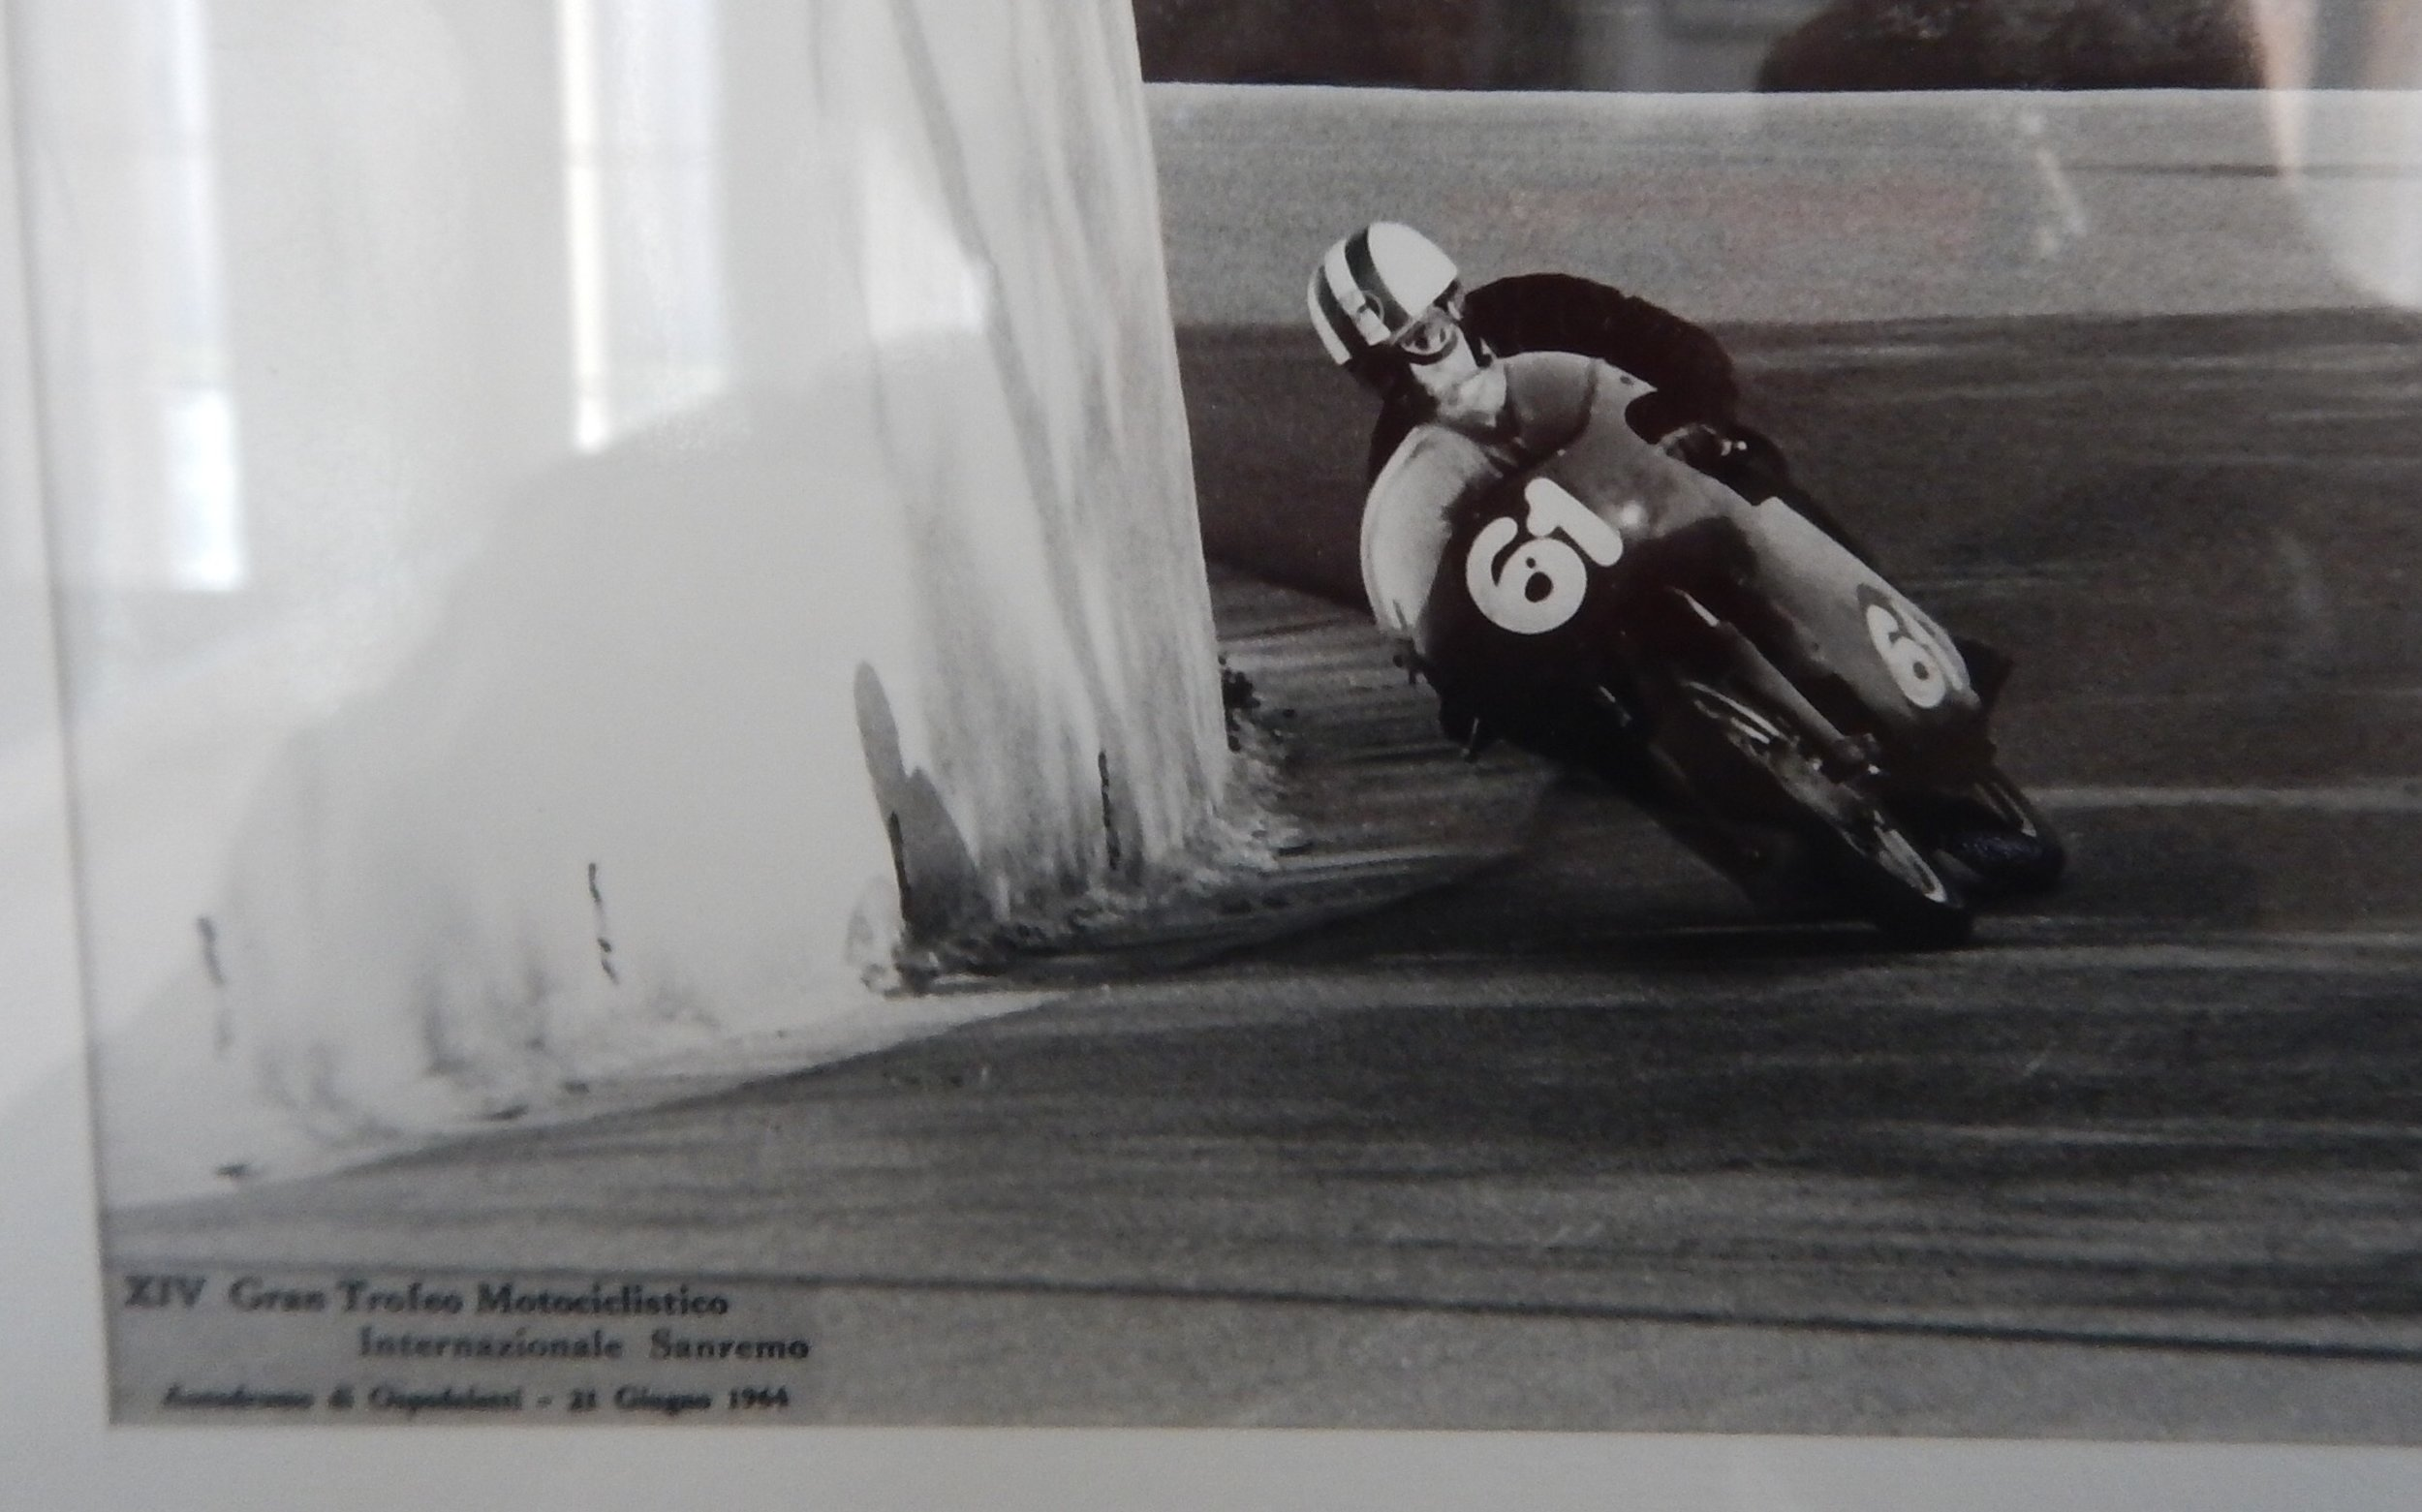 Franco raced Honda and Benelli's and even raced in a 1000 mile road race around central Italy.